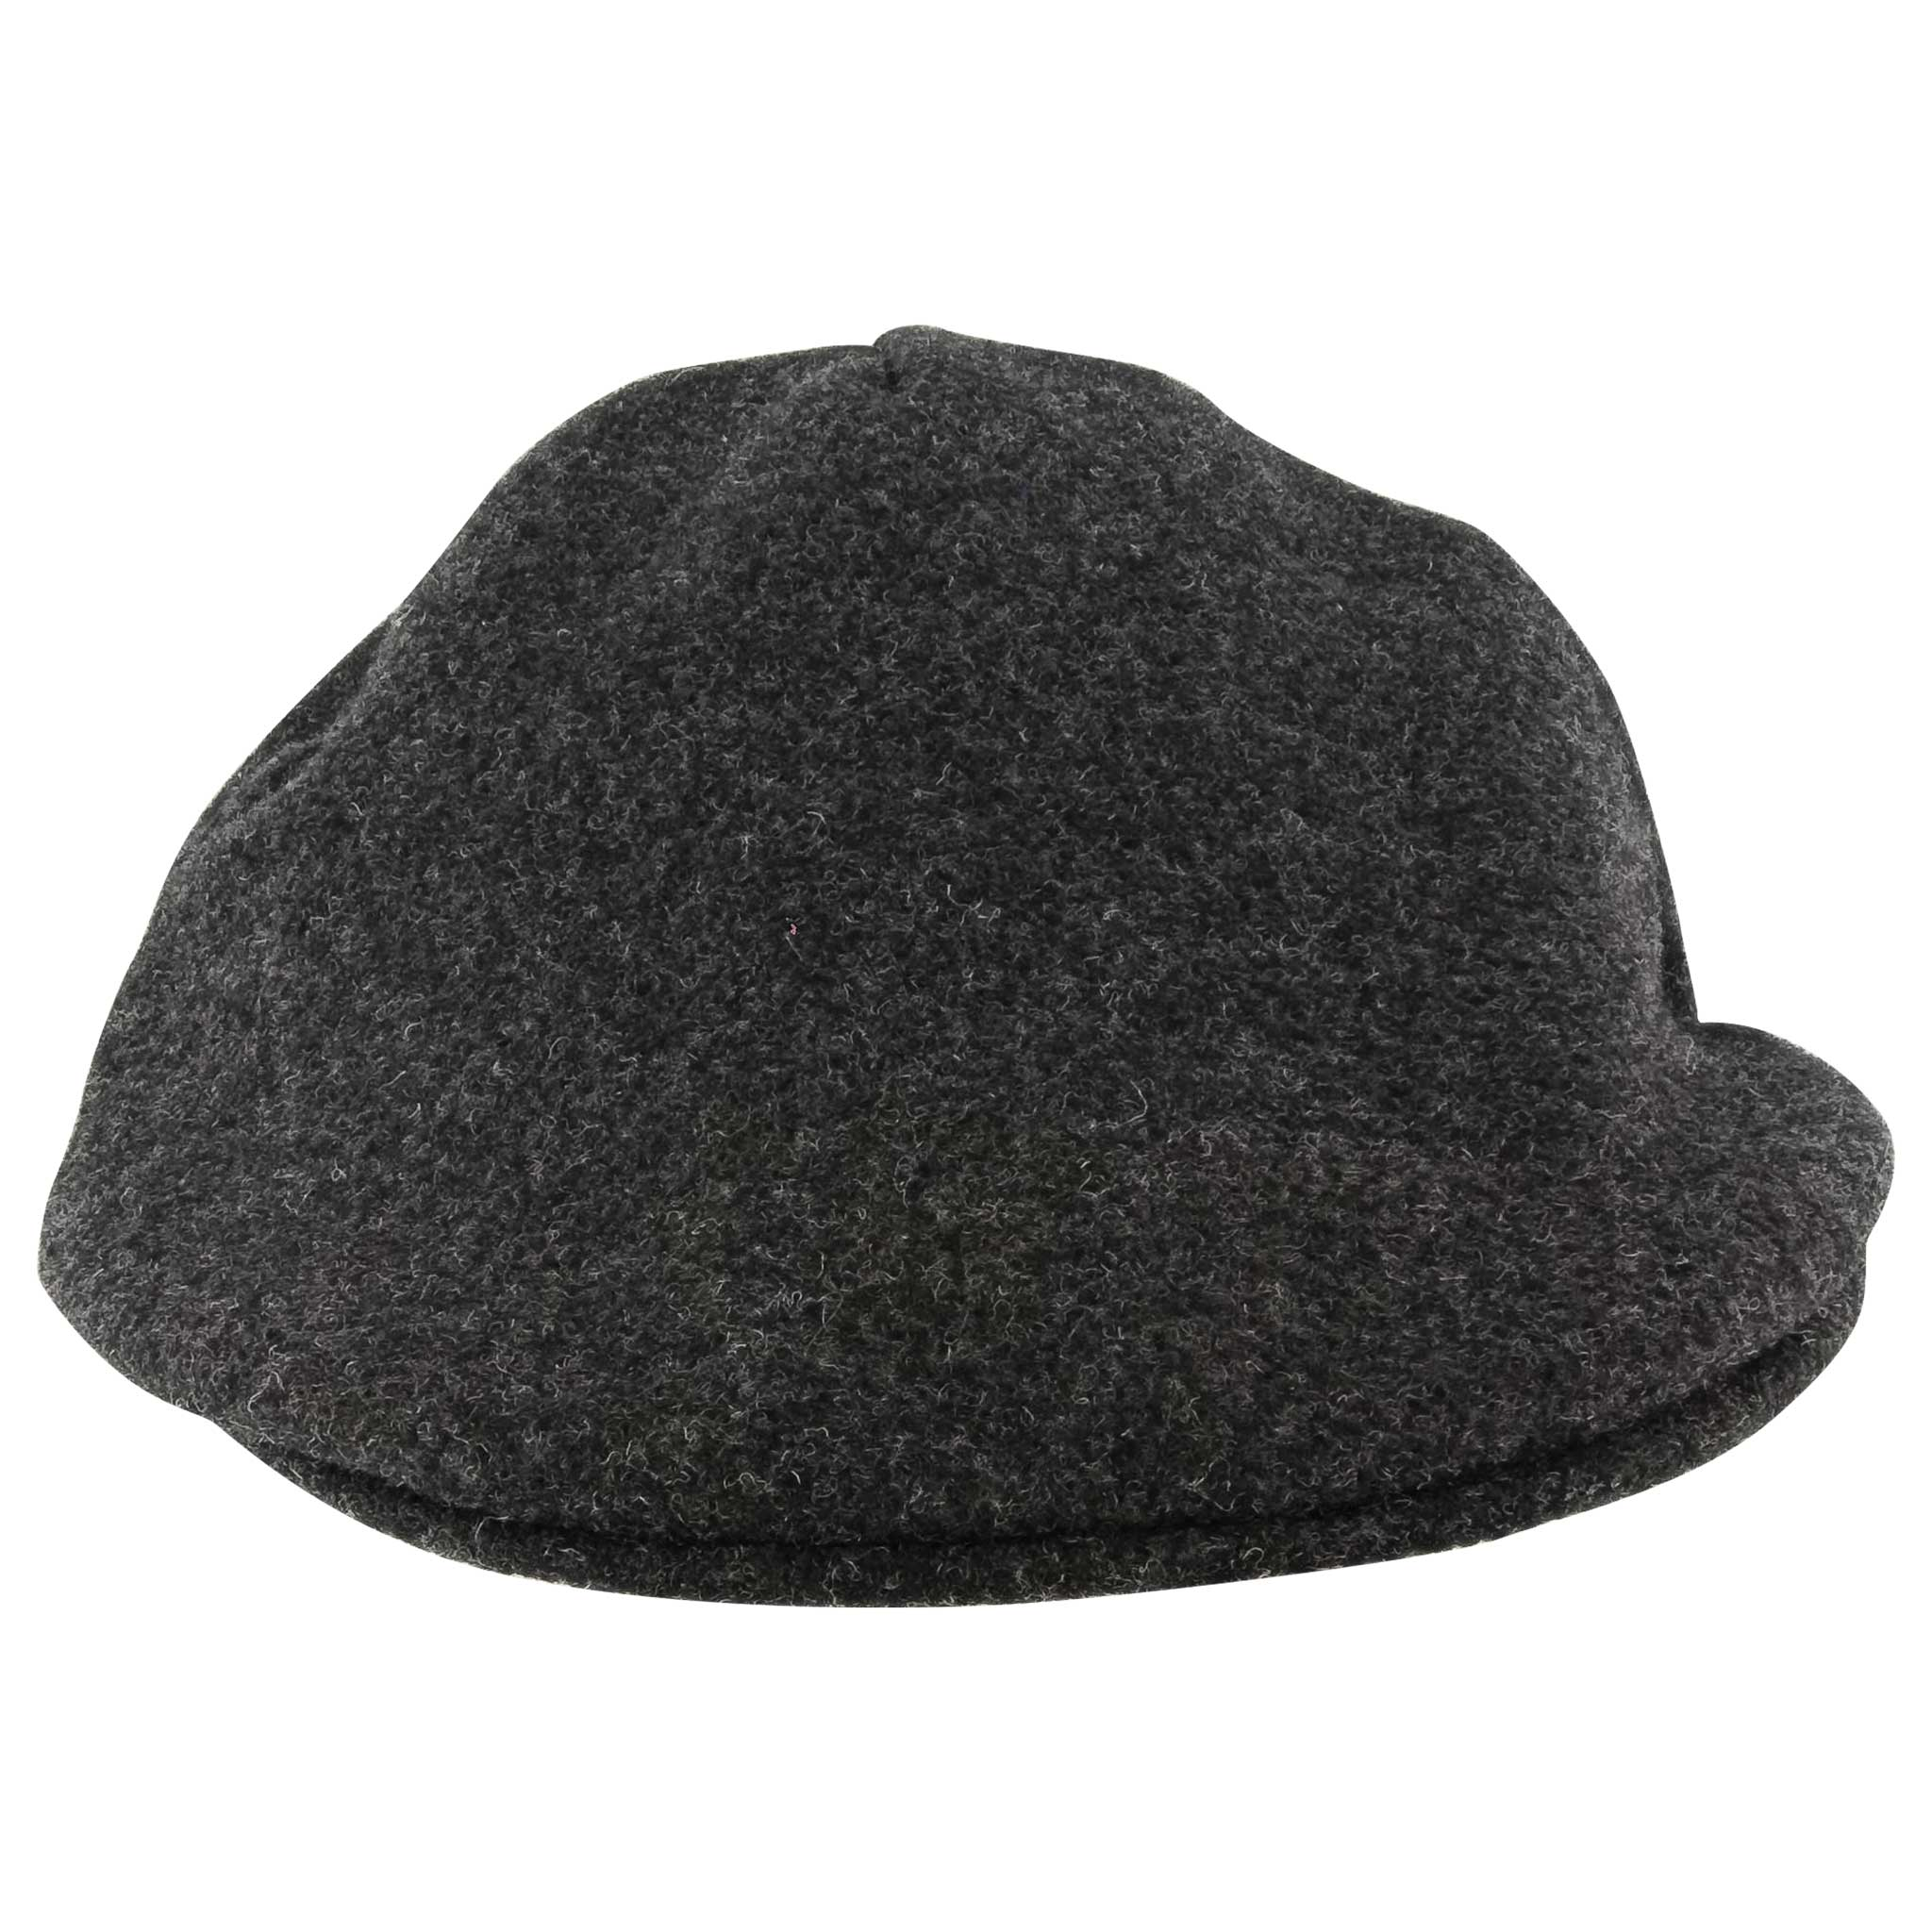 ... Wool Pub Charcoal Hat From New York Hat Company ... 3e397d30480d